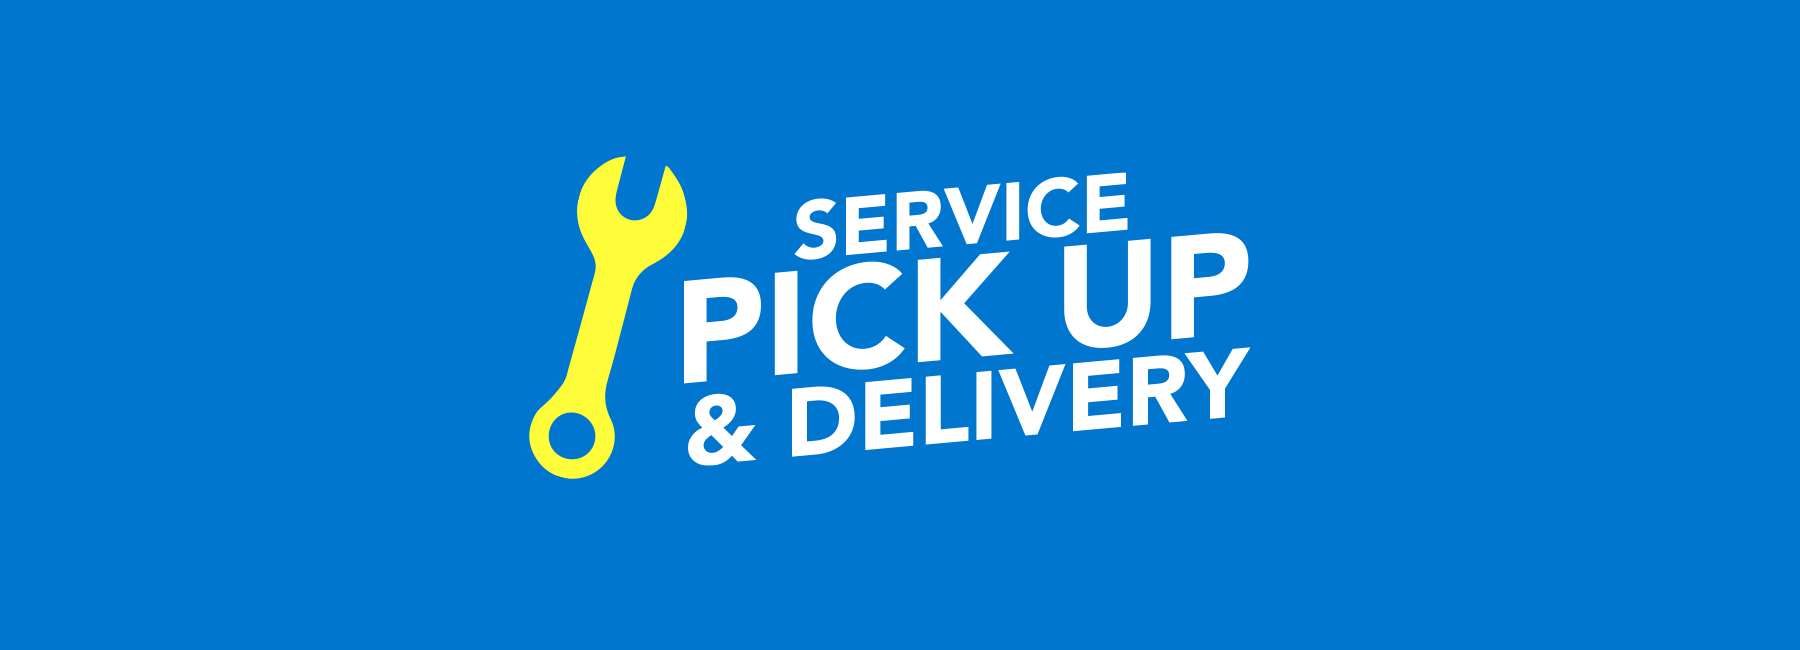 service pickup and delivery banner